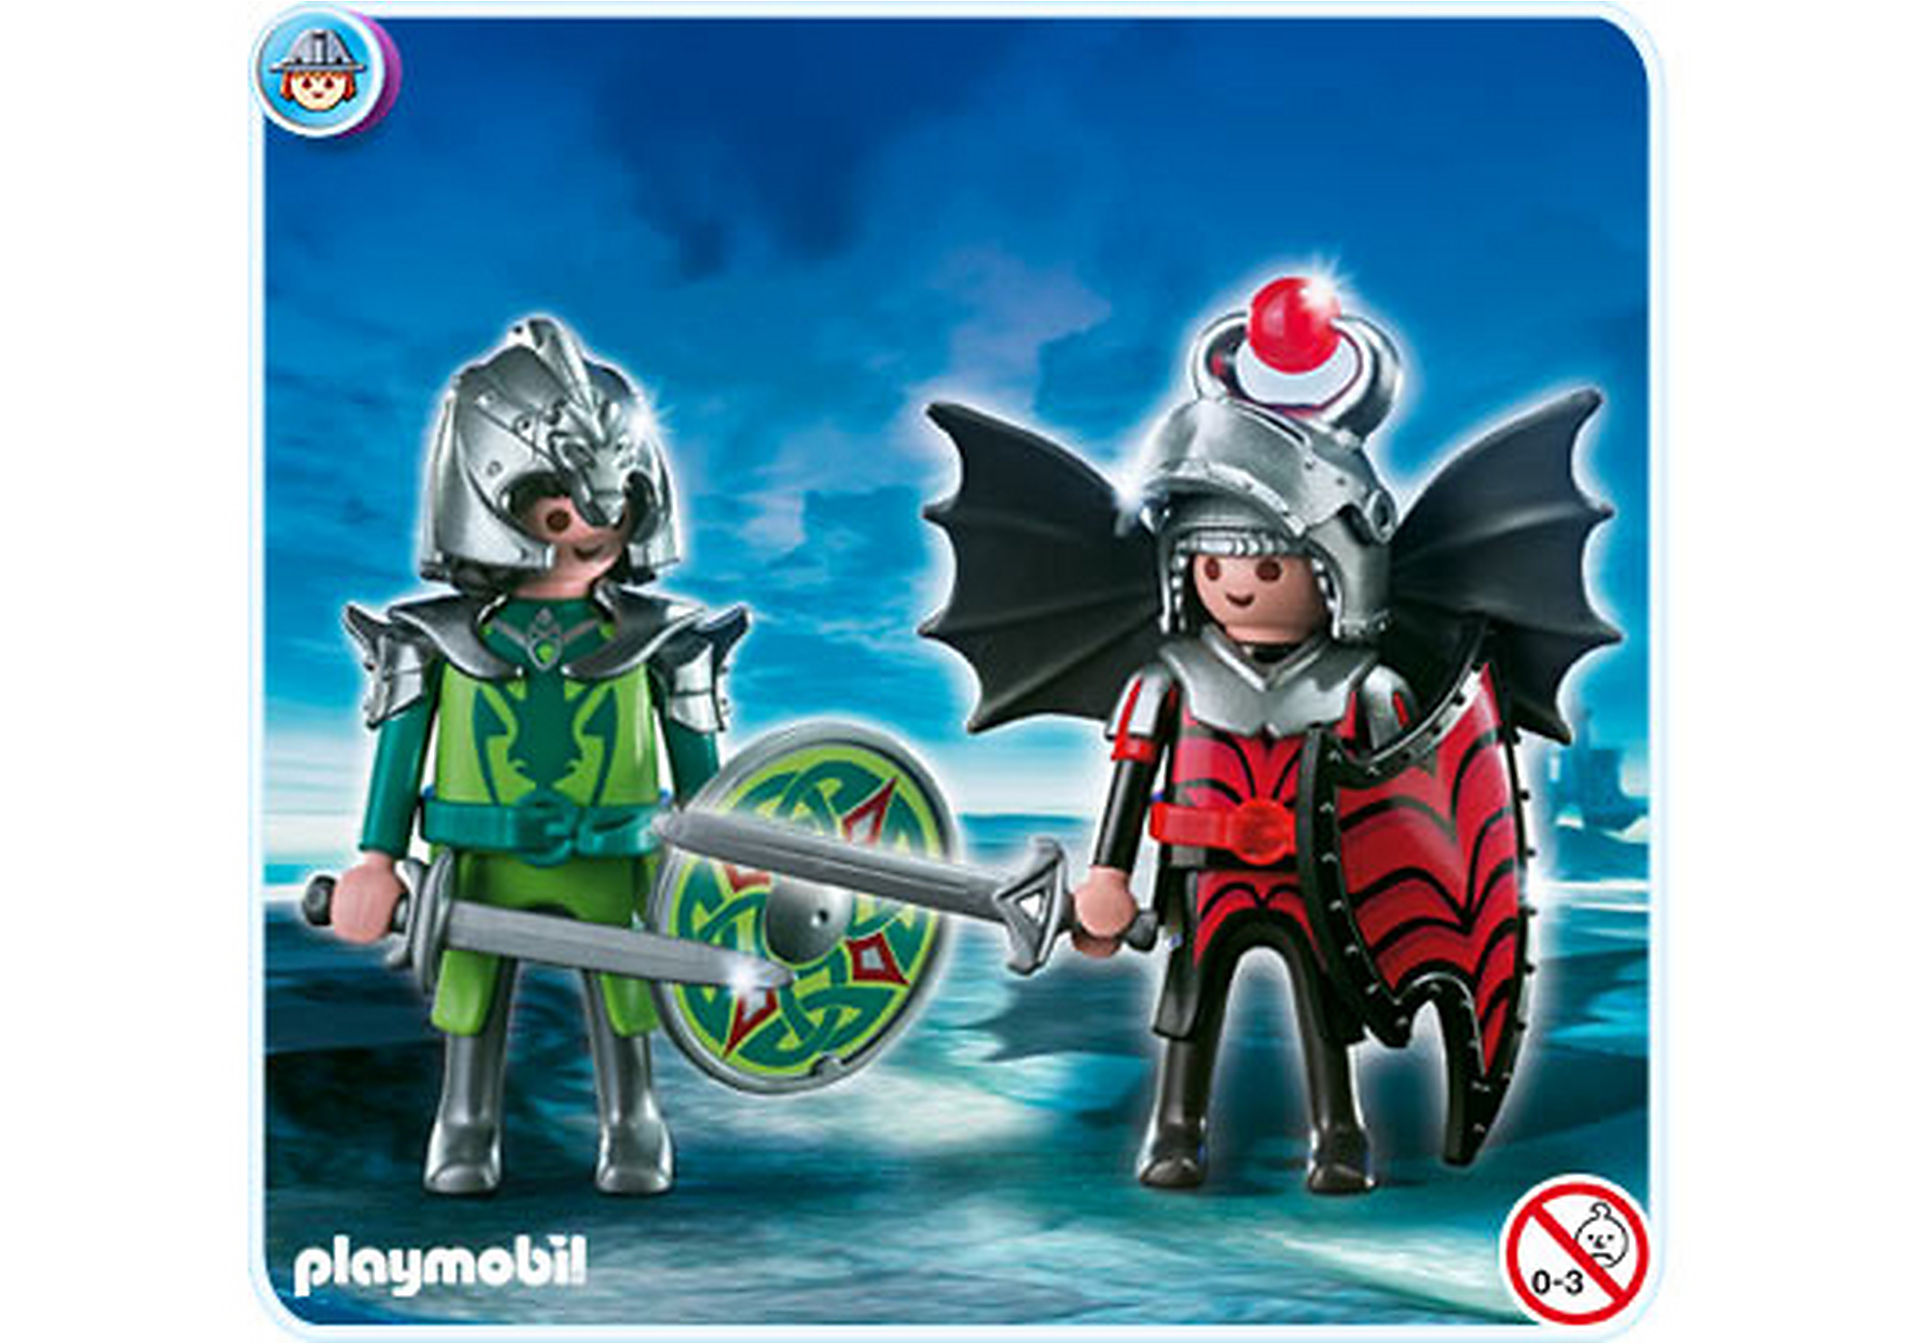 4912-A Playmobil Duo Chevaliers dragons zoom image1